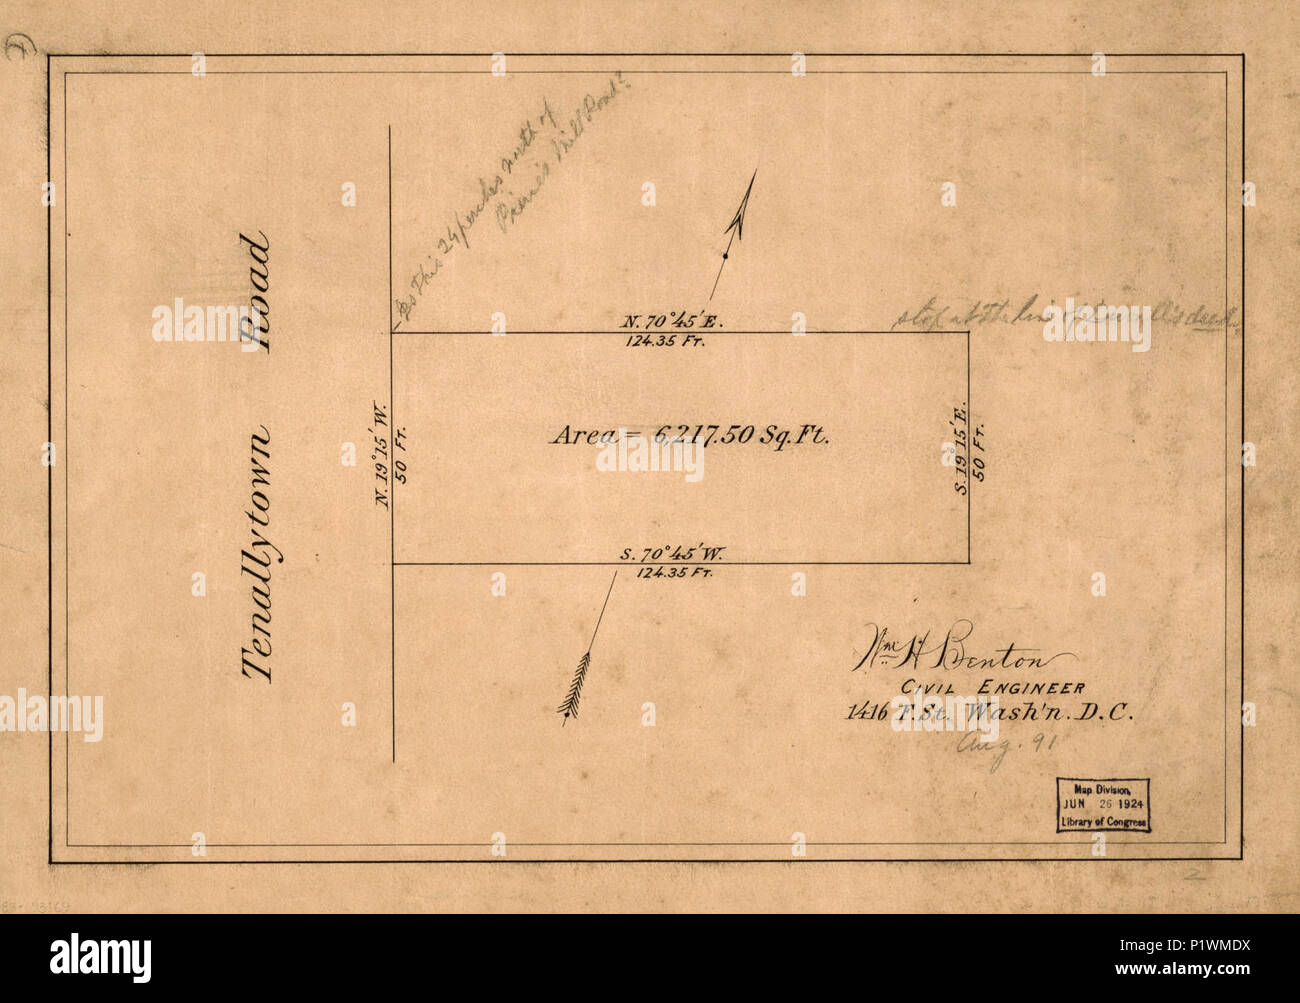 Cadastral survey map of a land tract fronting Tennallytown